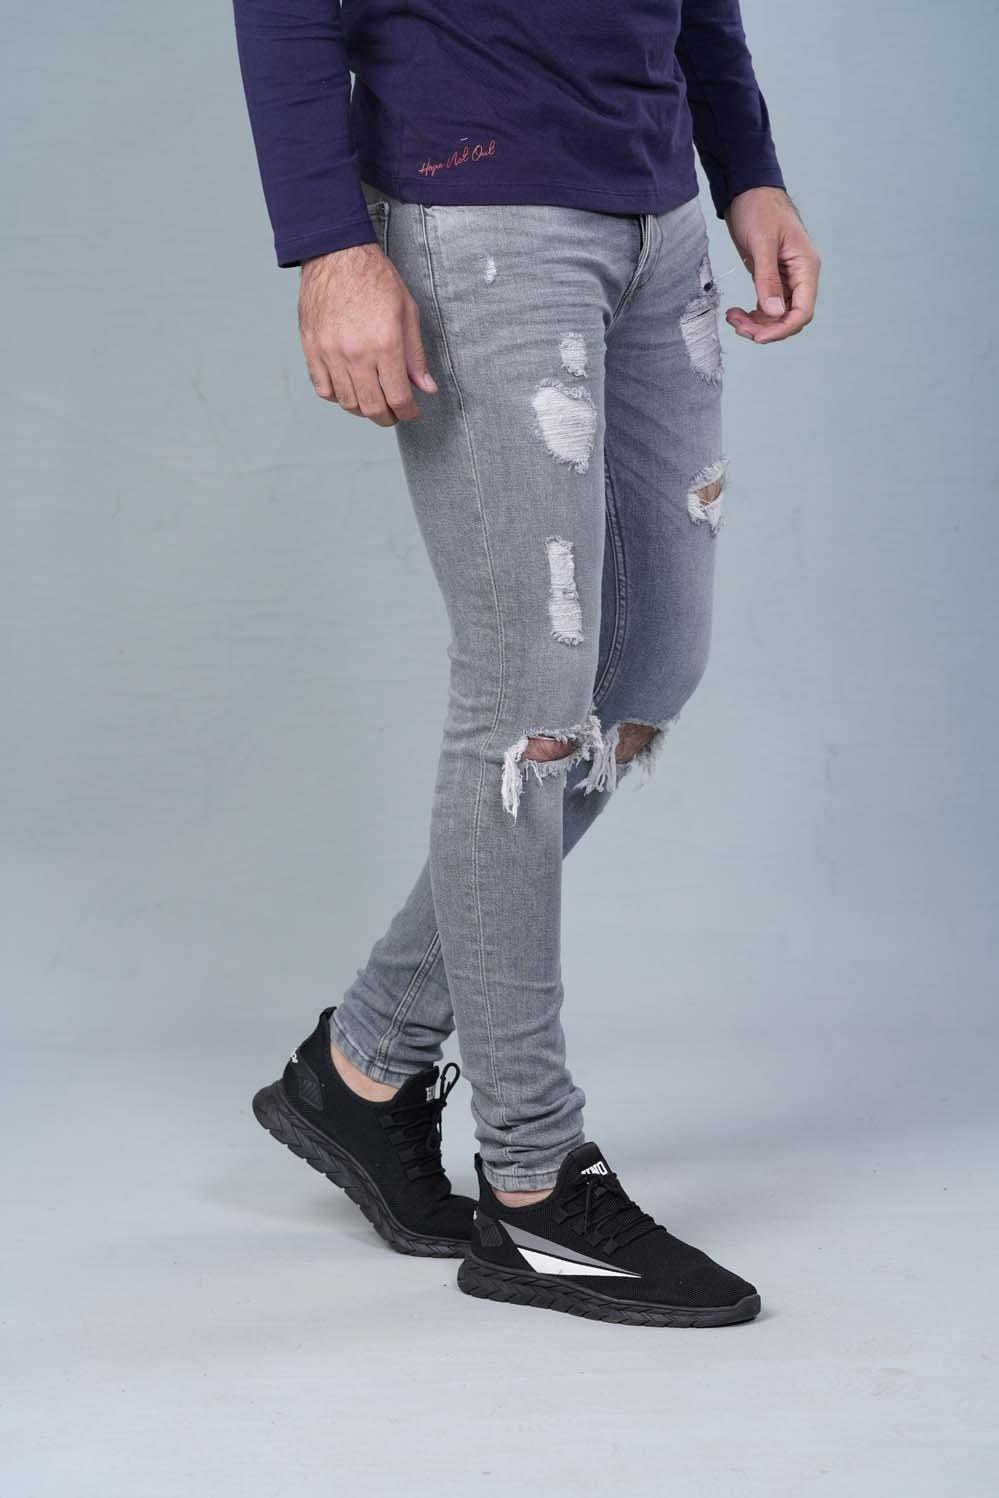 Grey Denim HMDBF20021 - HOPE NOT OUT